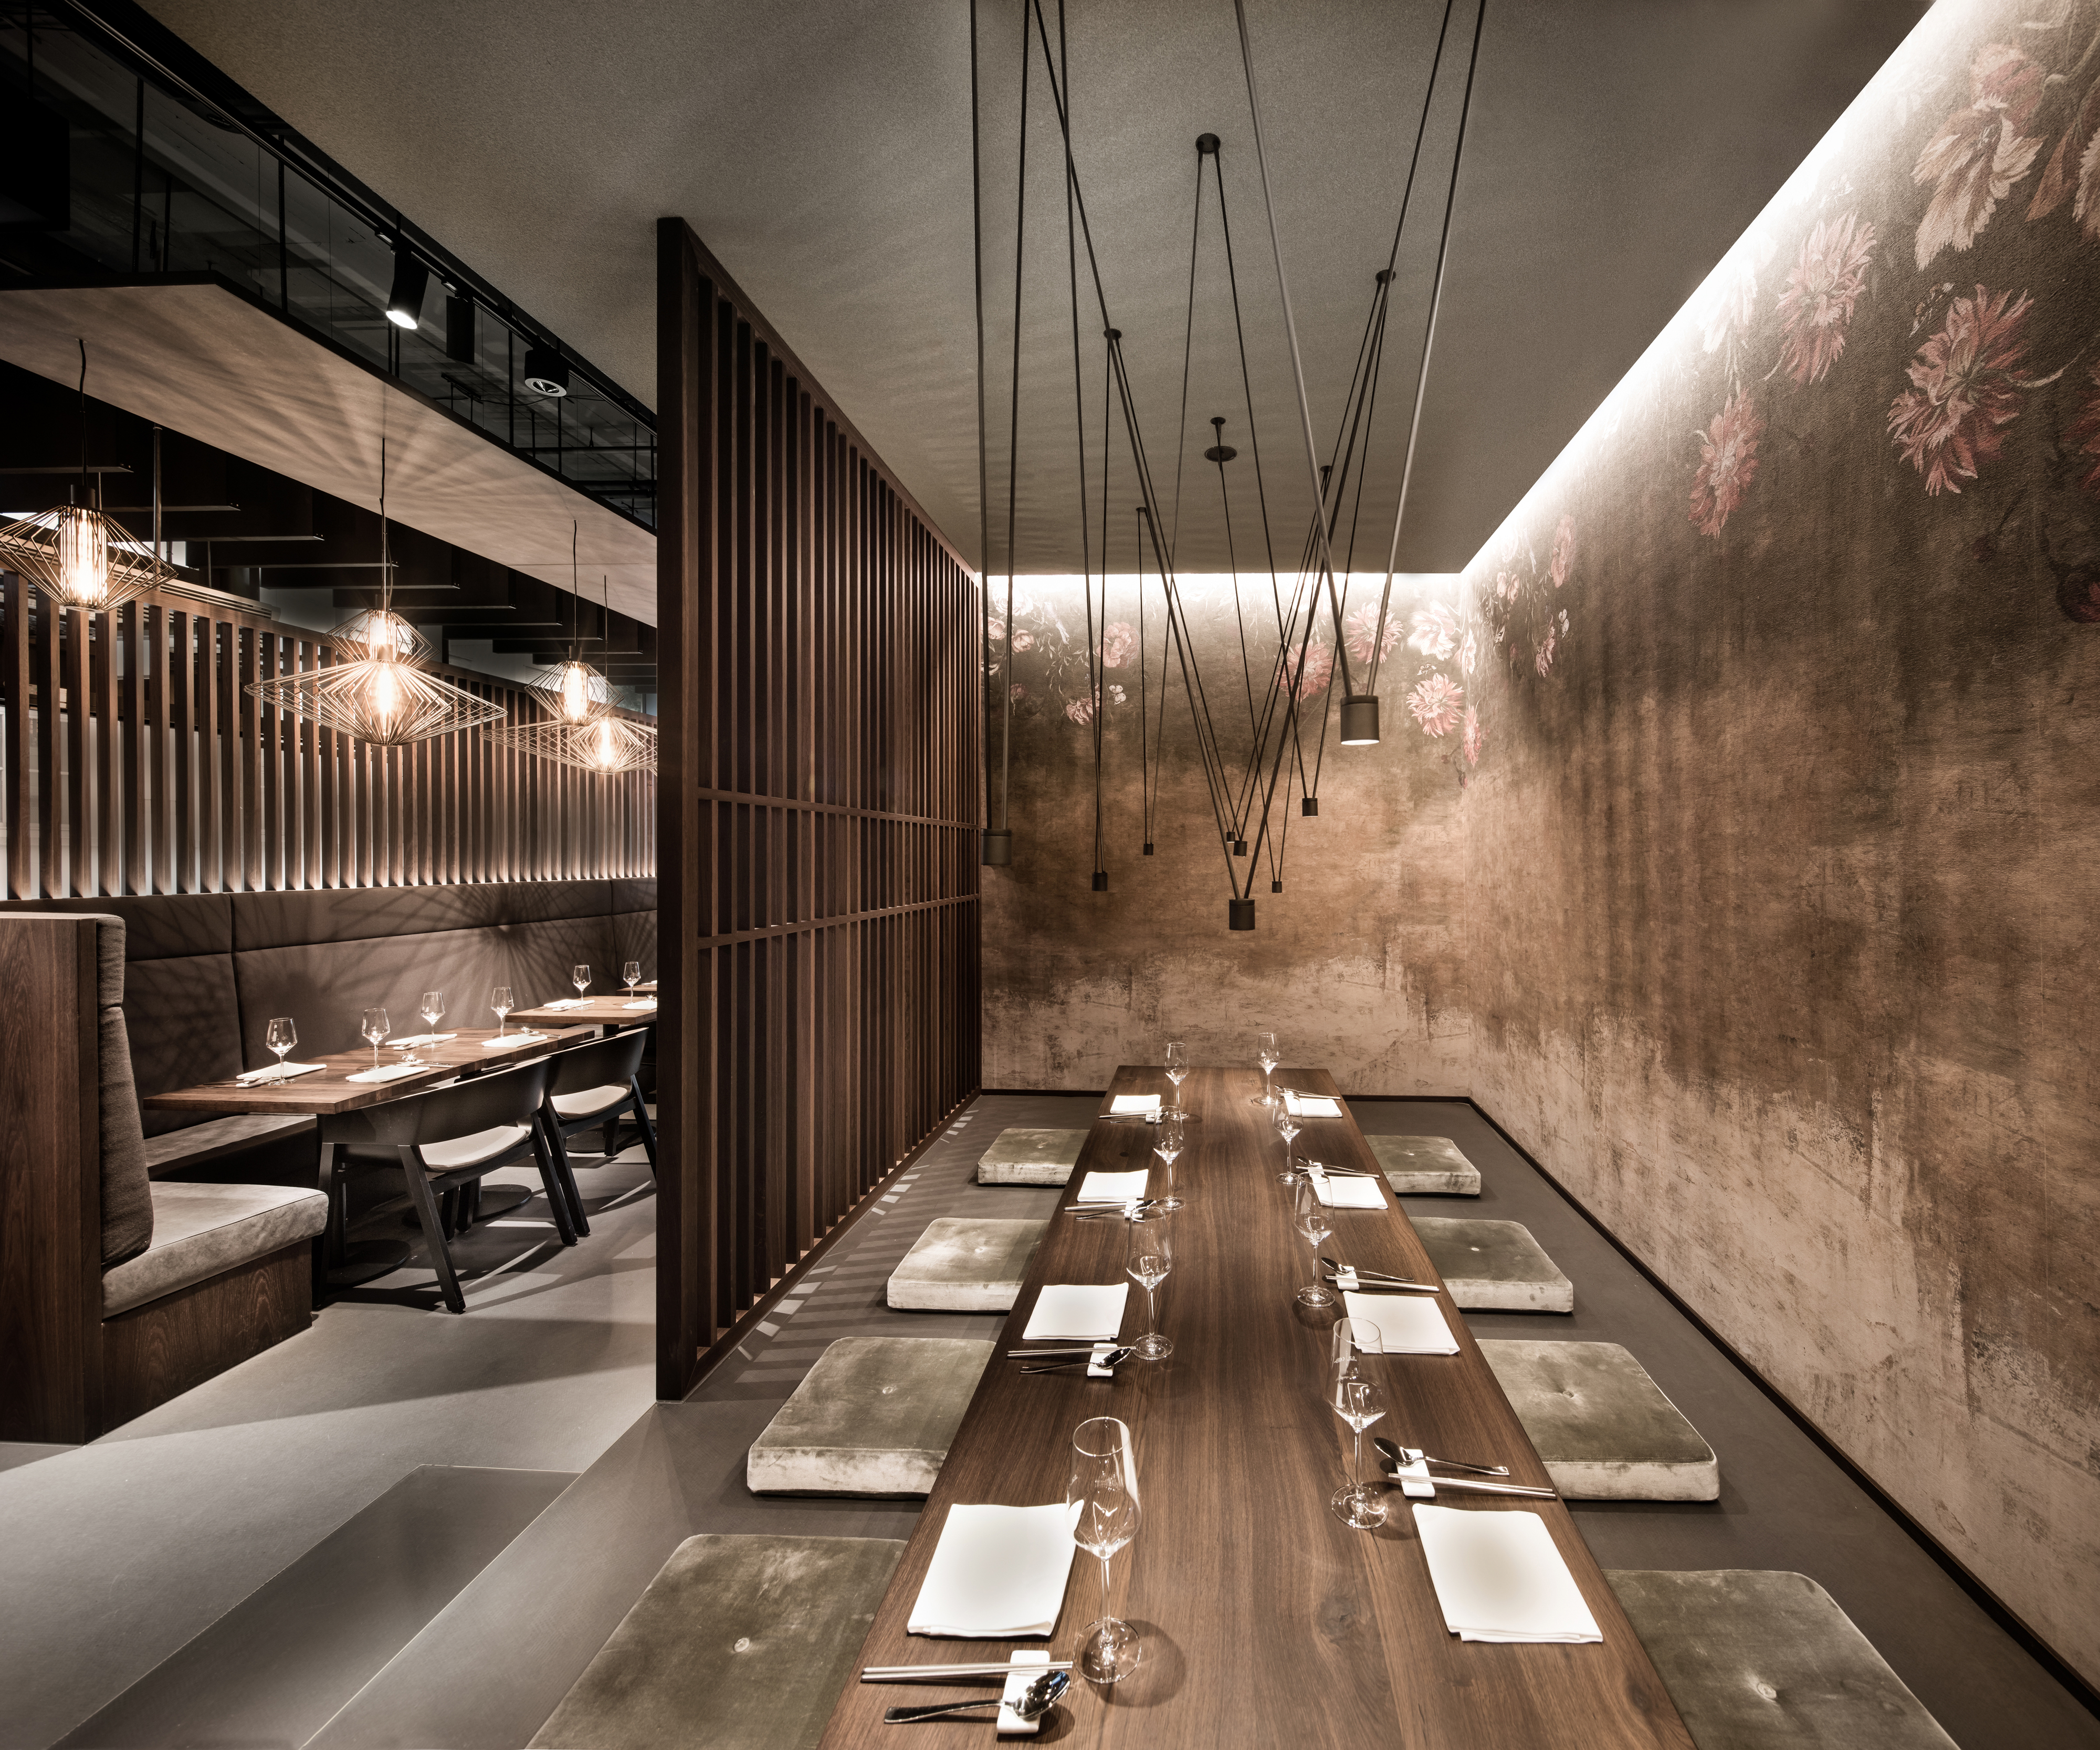 Enso Sushi Amp Grill A Blend Of Elegance And Harmony In A